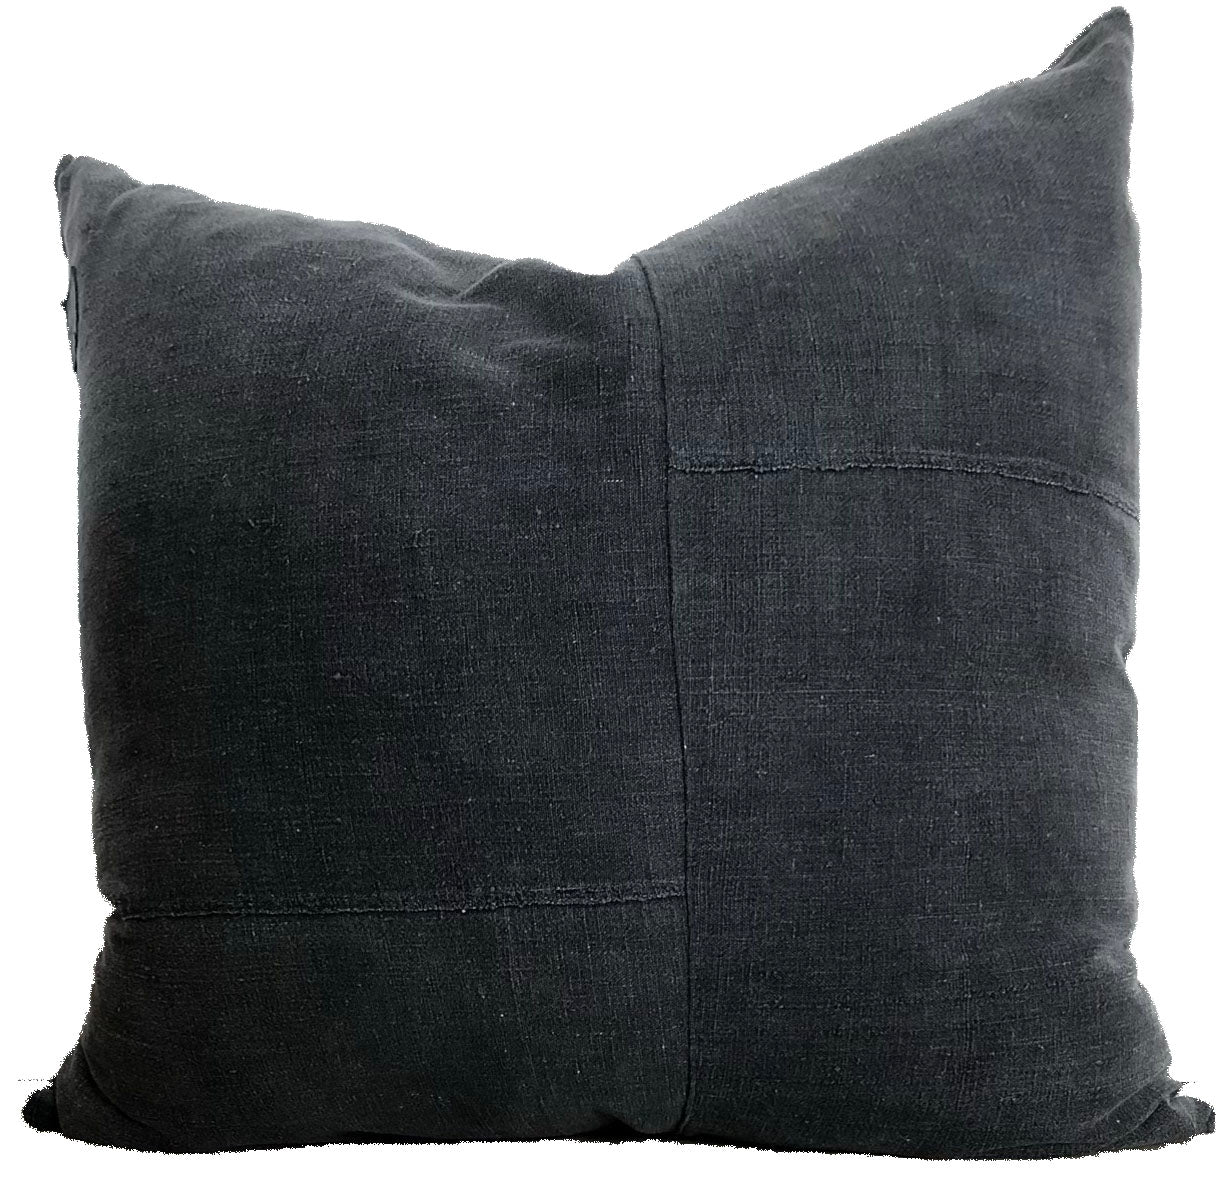 Dahlia Black Pillow